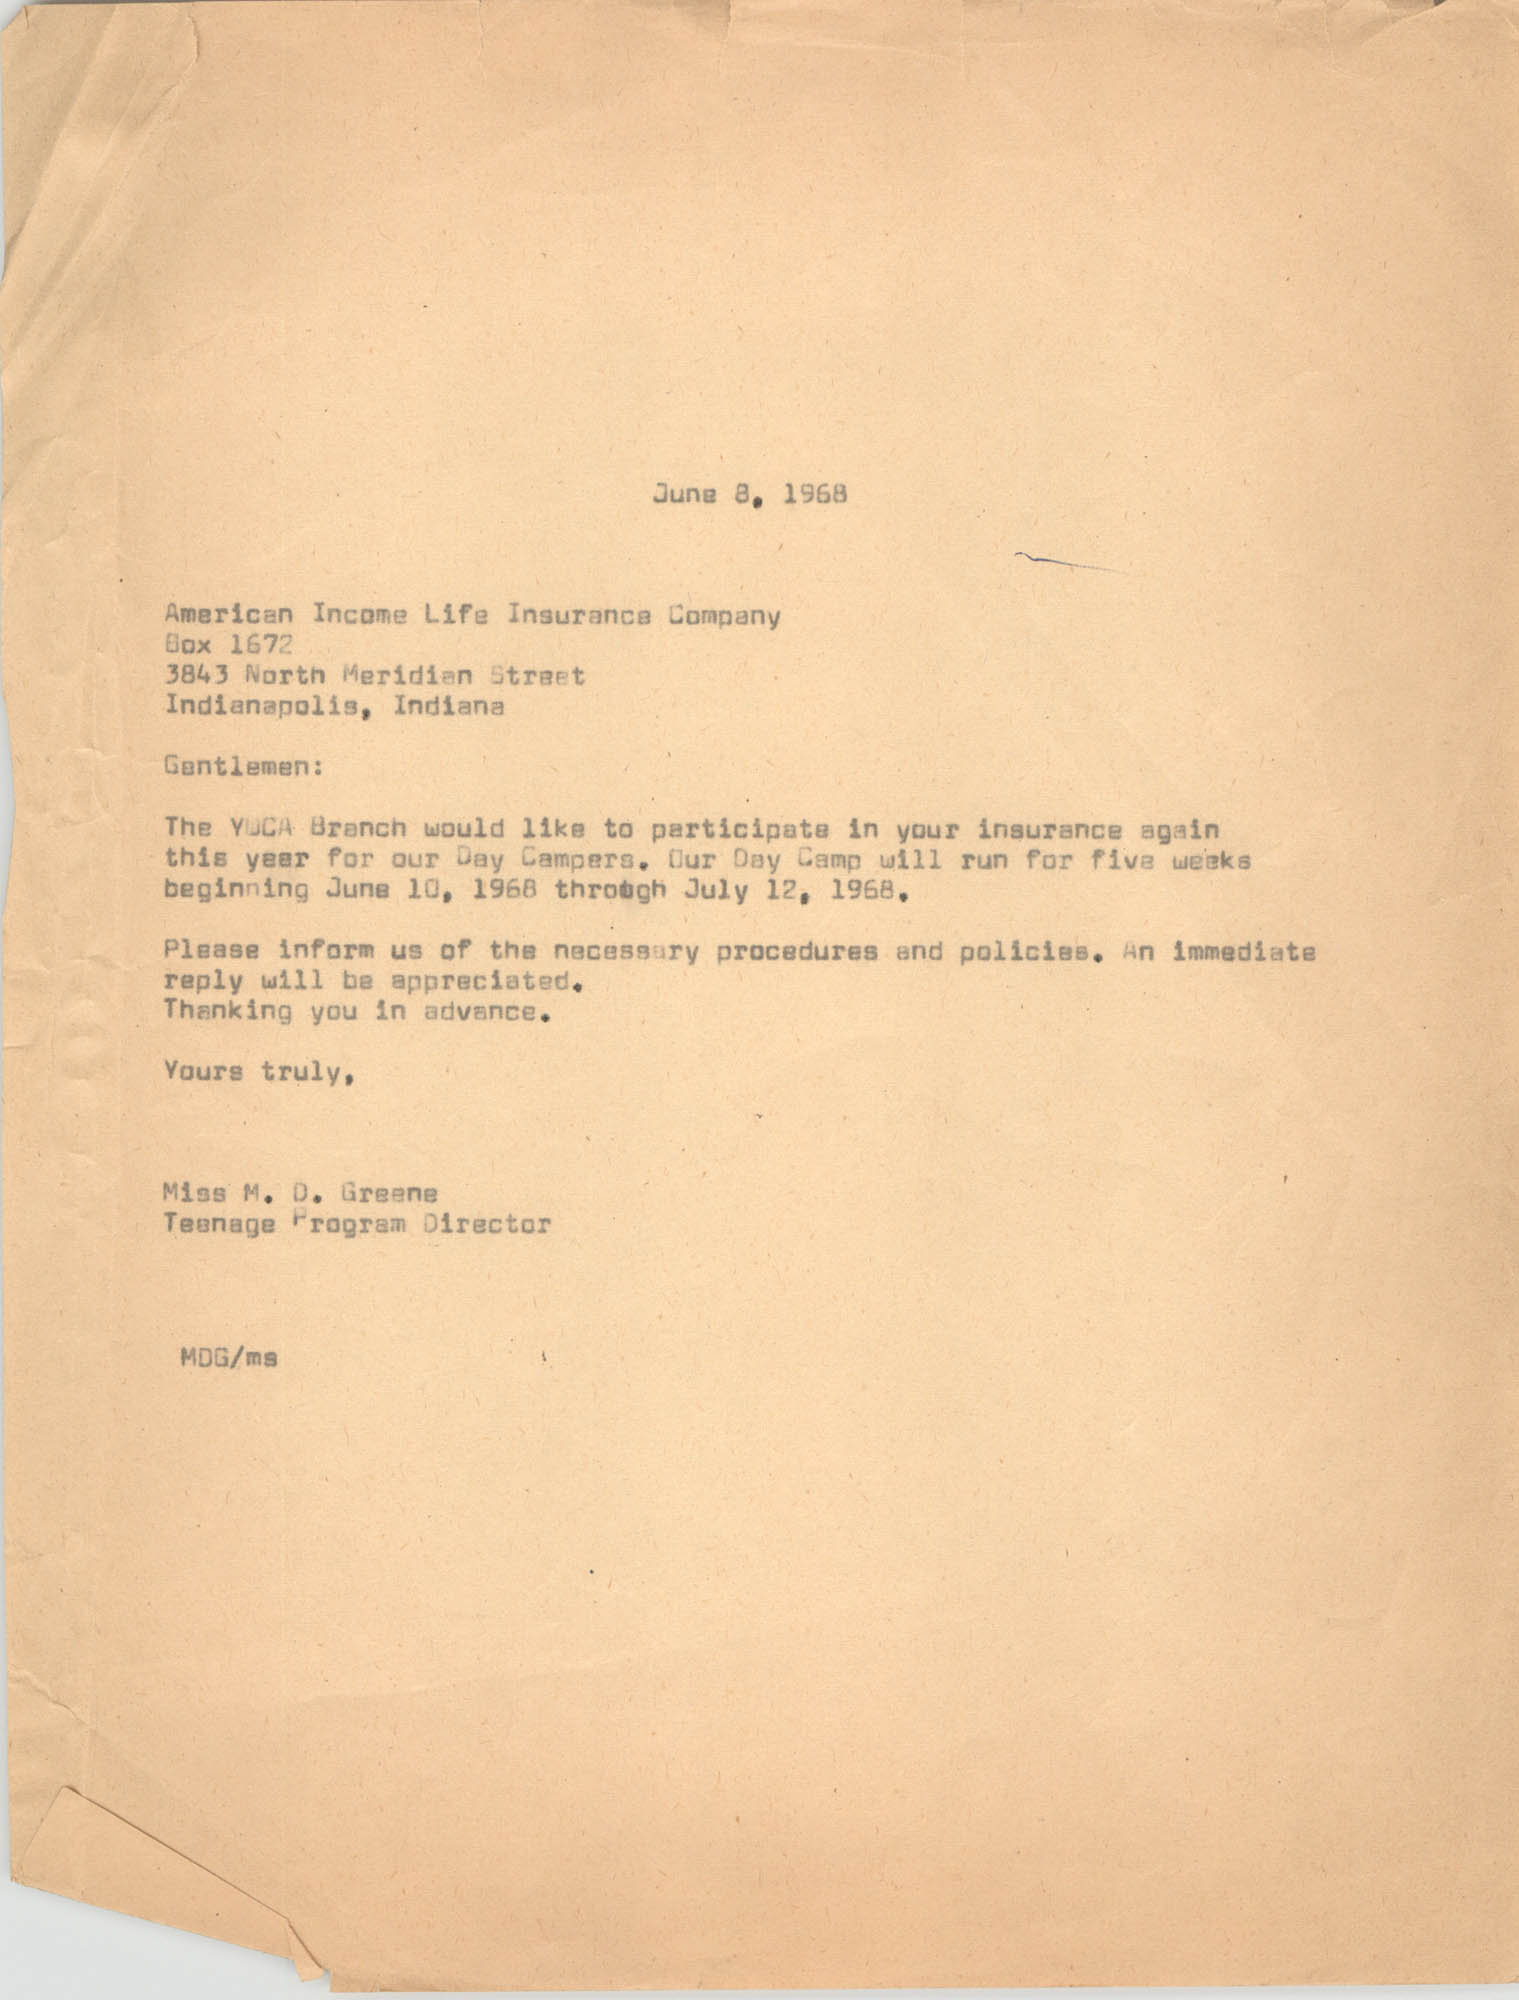 Letter from Marguerite D. Greene to American Income Life Insurance Company, June 8, 1968